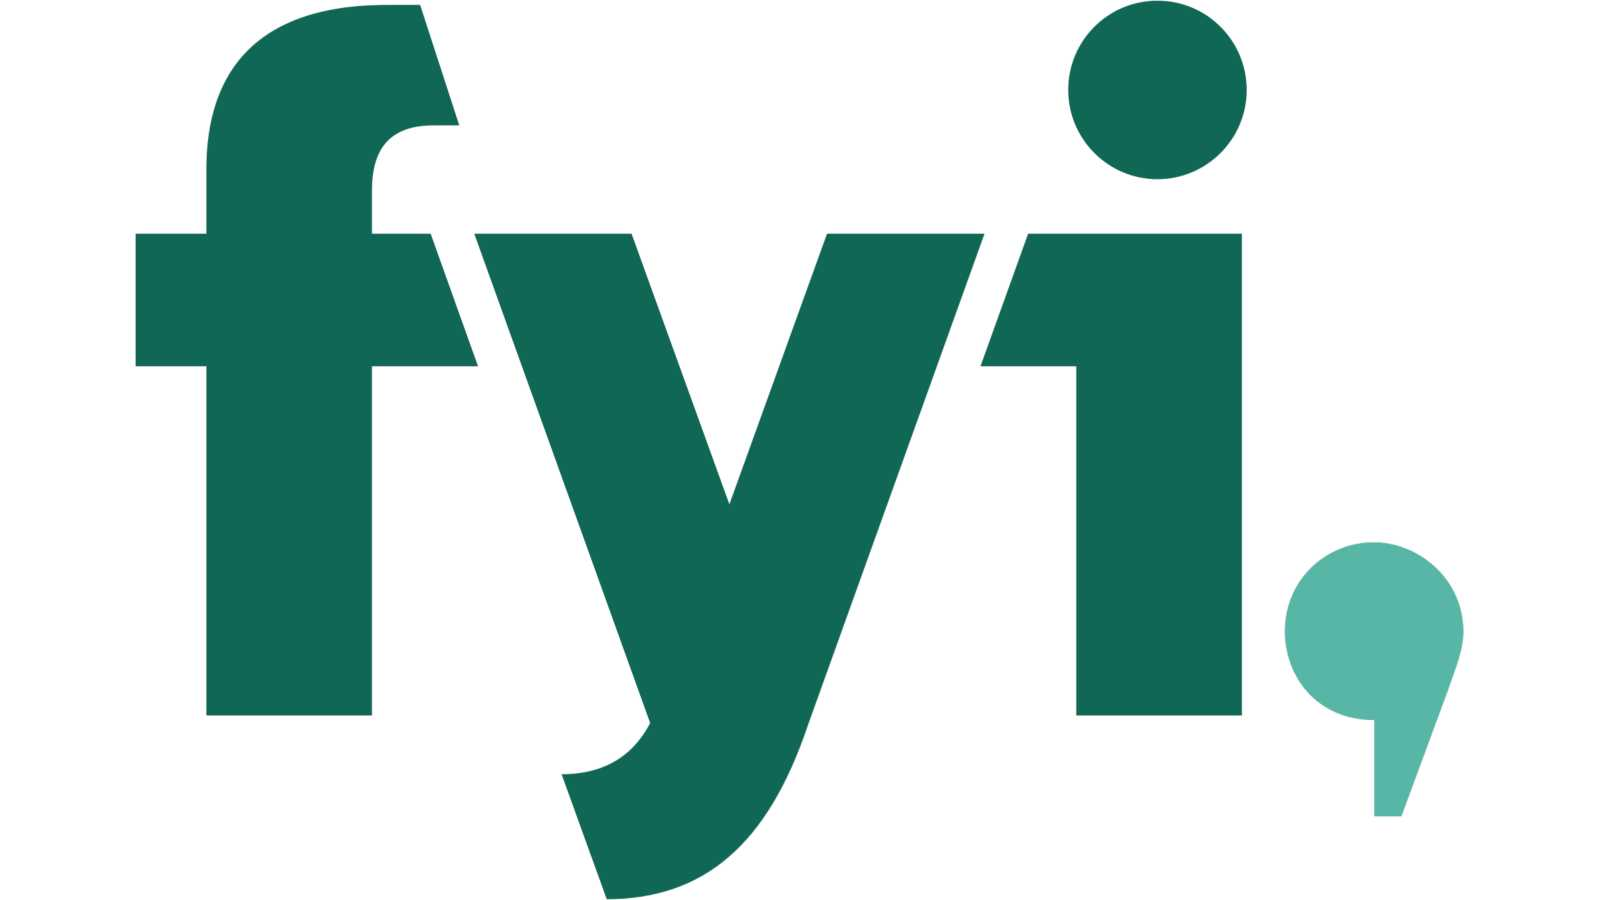 How to Watch FYI Without Cable